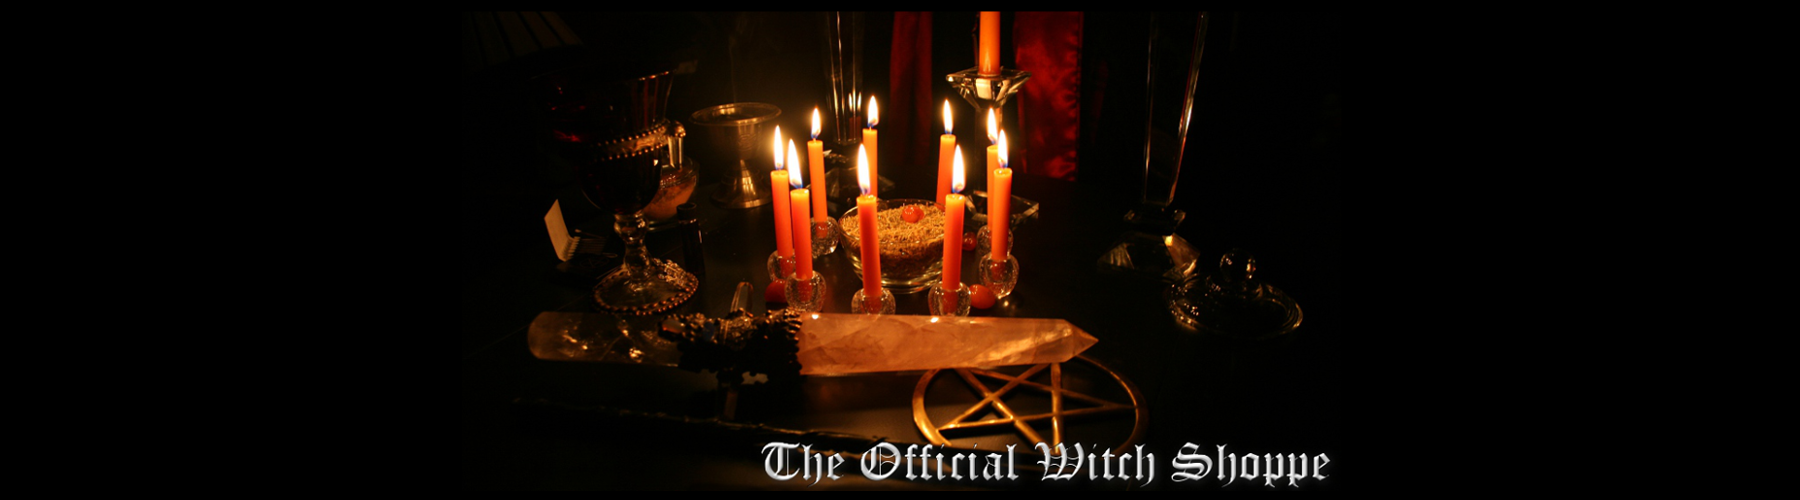 The Official Witch Shoppe Altar